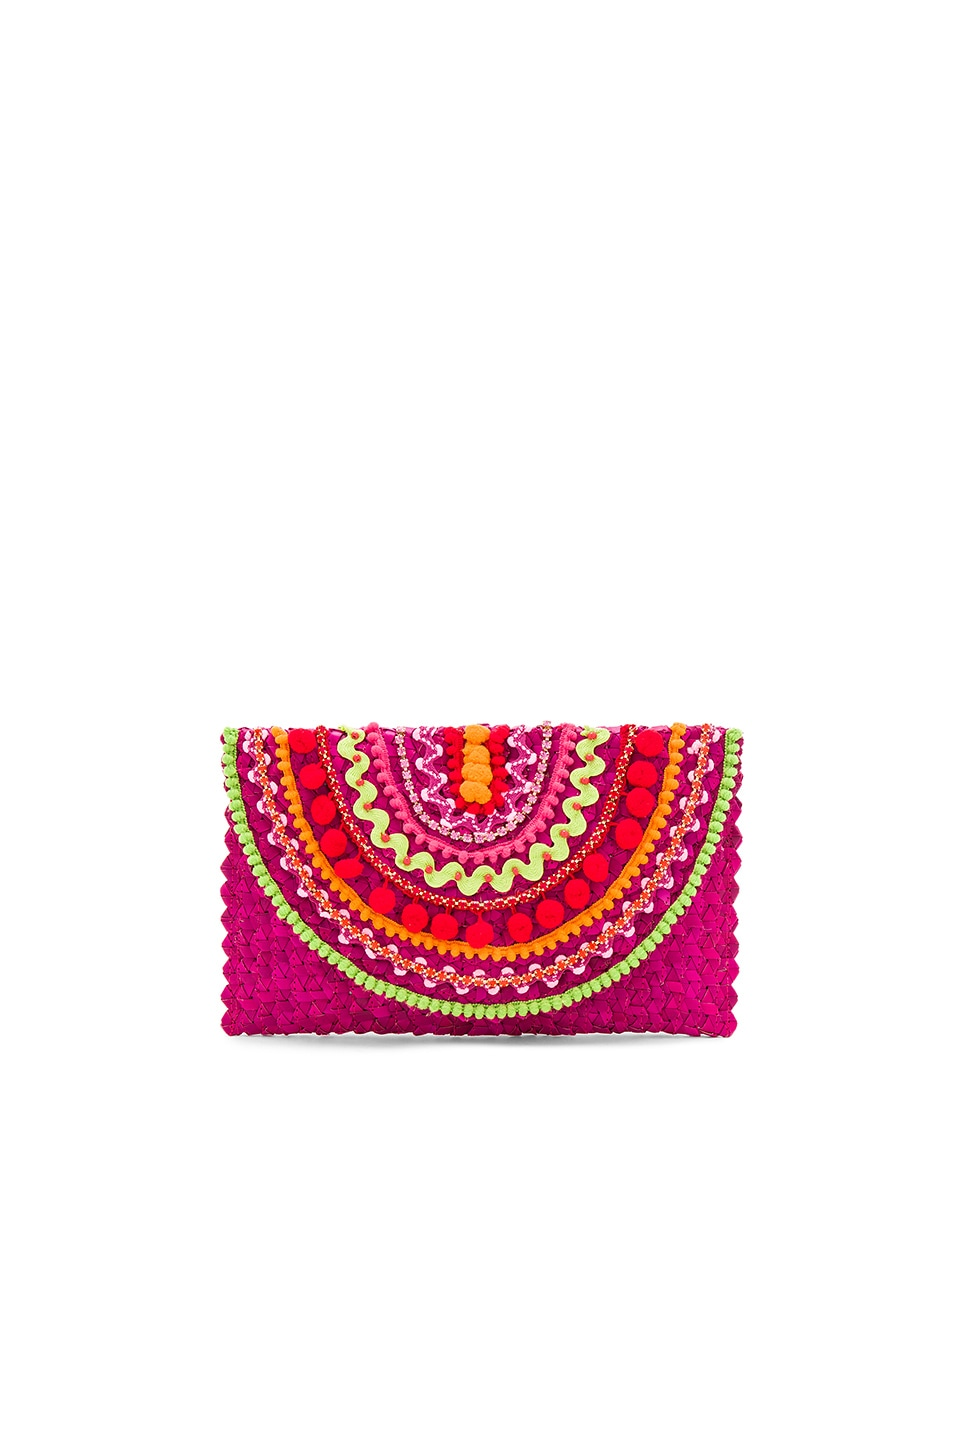 Mystique Clutch in Pink